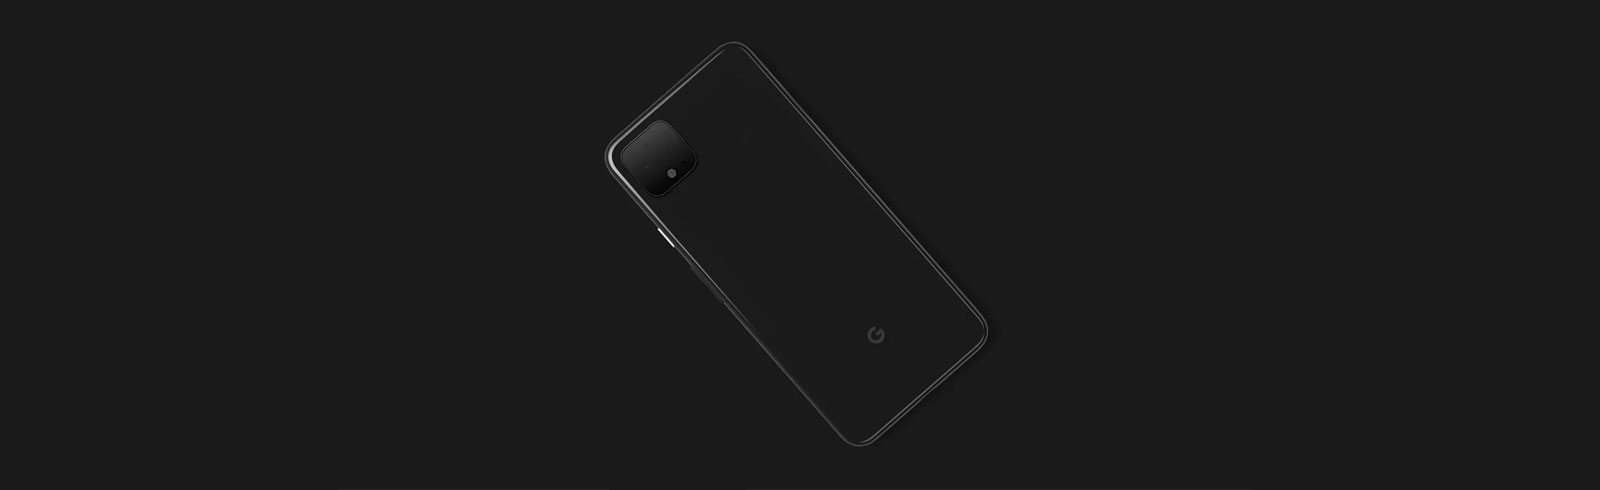 Google Pixel 4 and Pixel 4 XL will have 90Hz displays and 12MP+16MP rear cameras